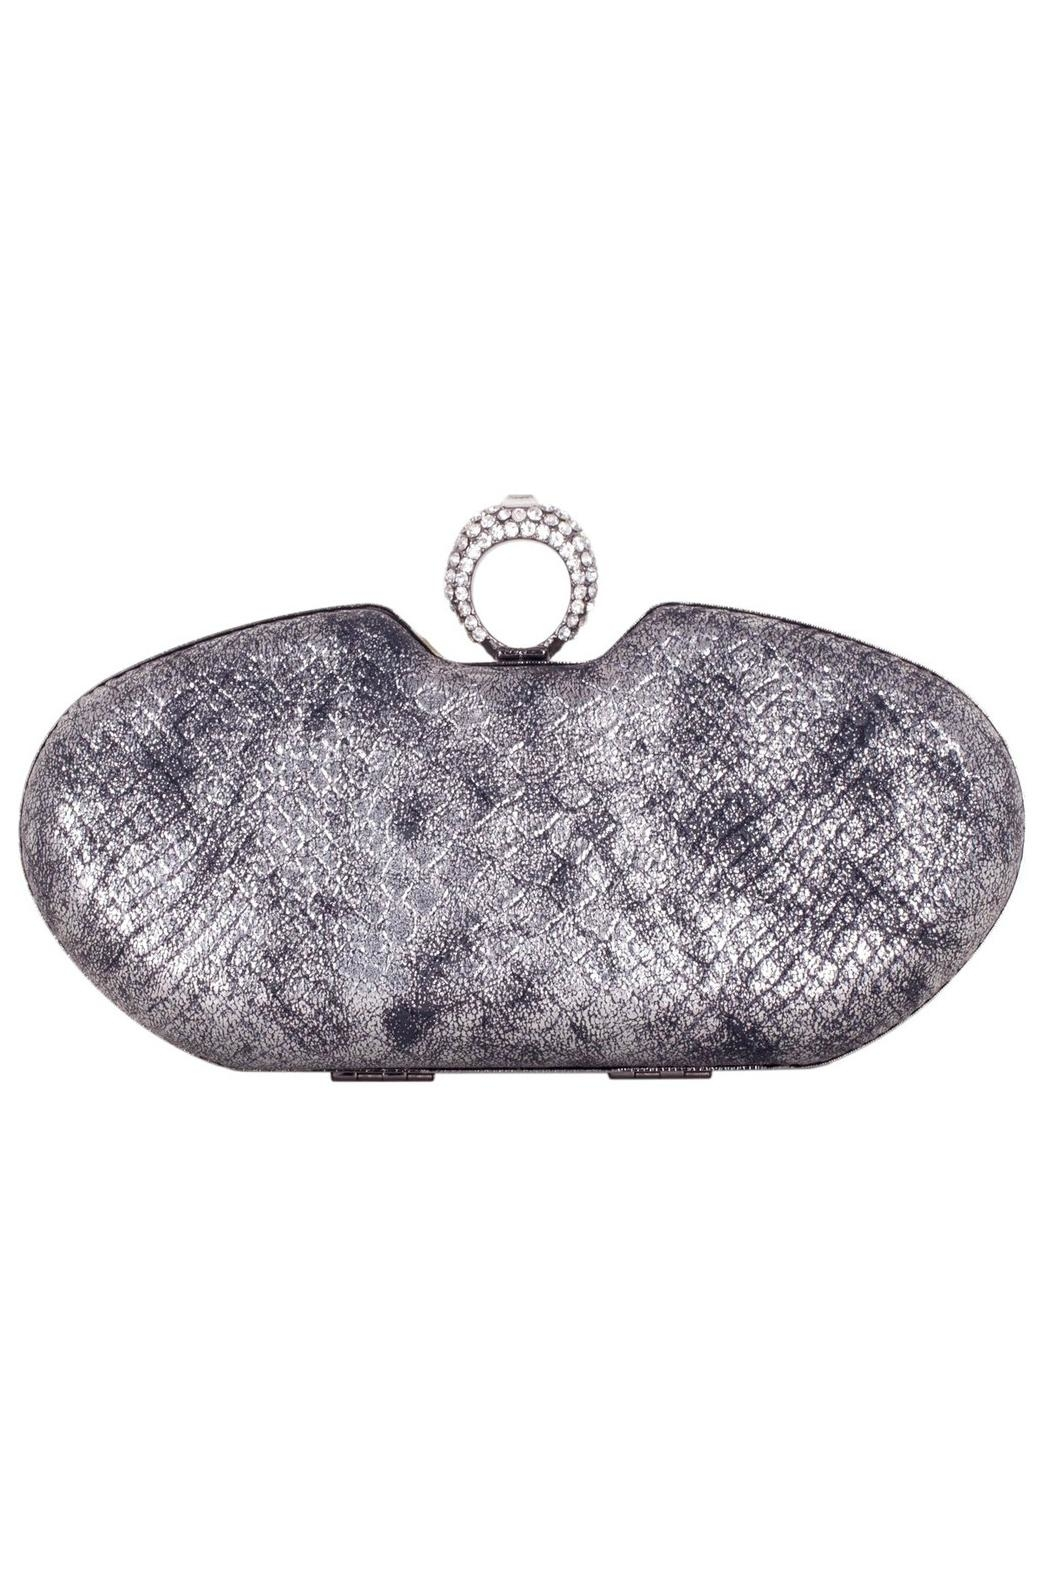 Claudia Canova Snake Metallic Clutches. - Front Cropped Image